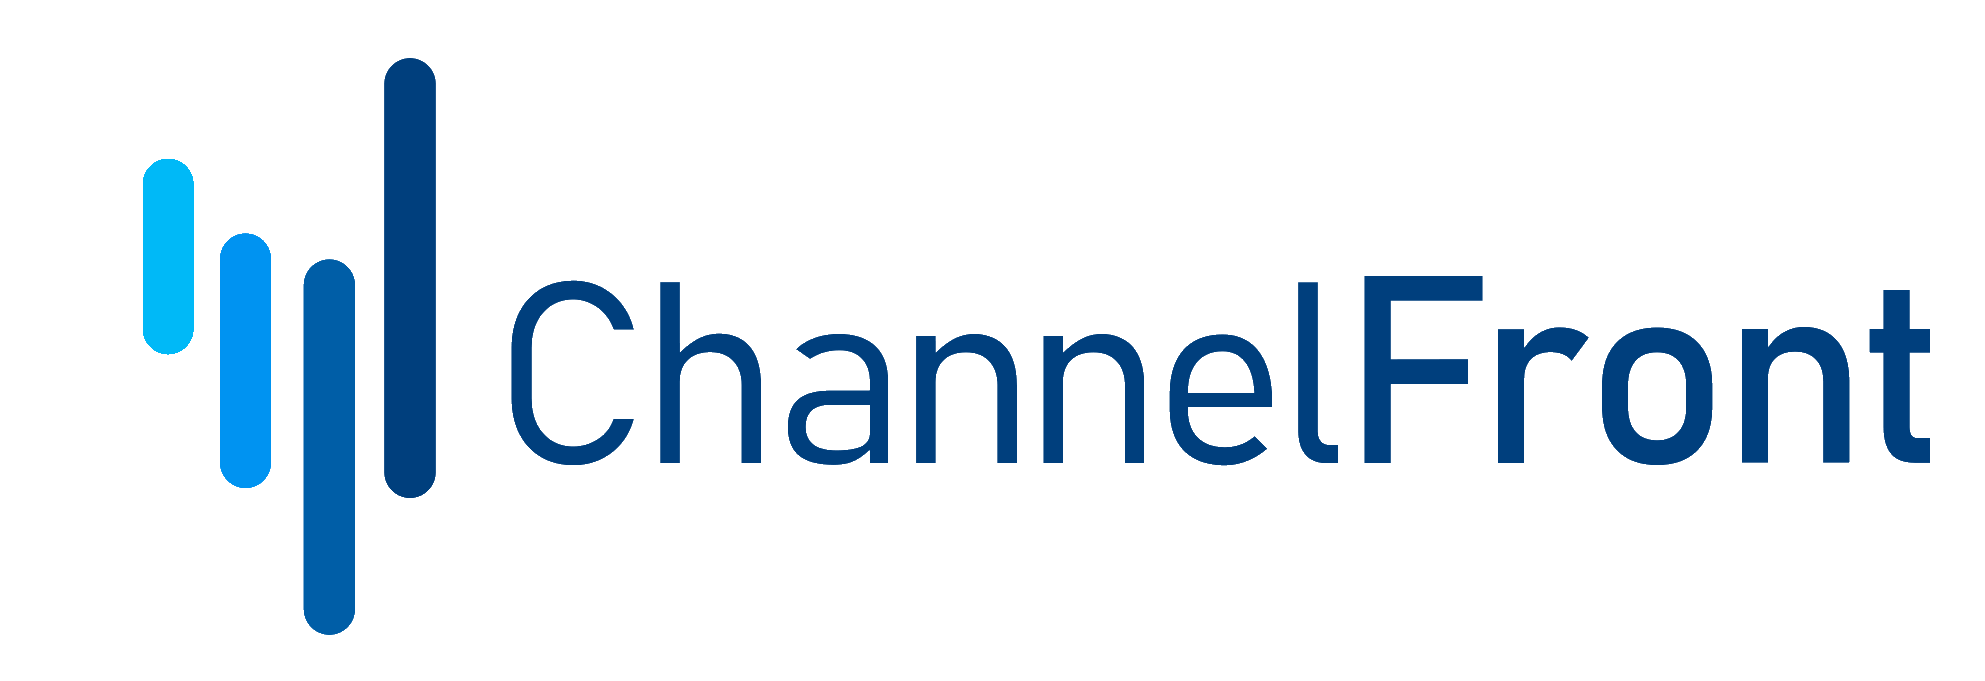 ChannelFront | eCommerce Marketplace Product Data Management, Optimization, and Strategy